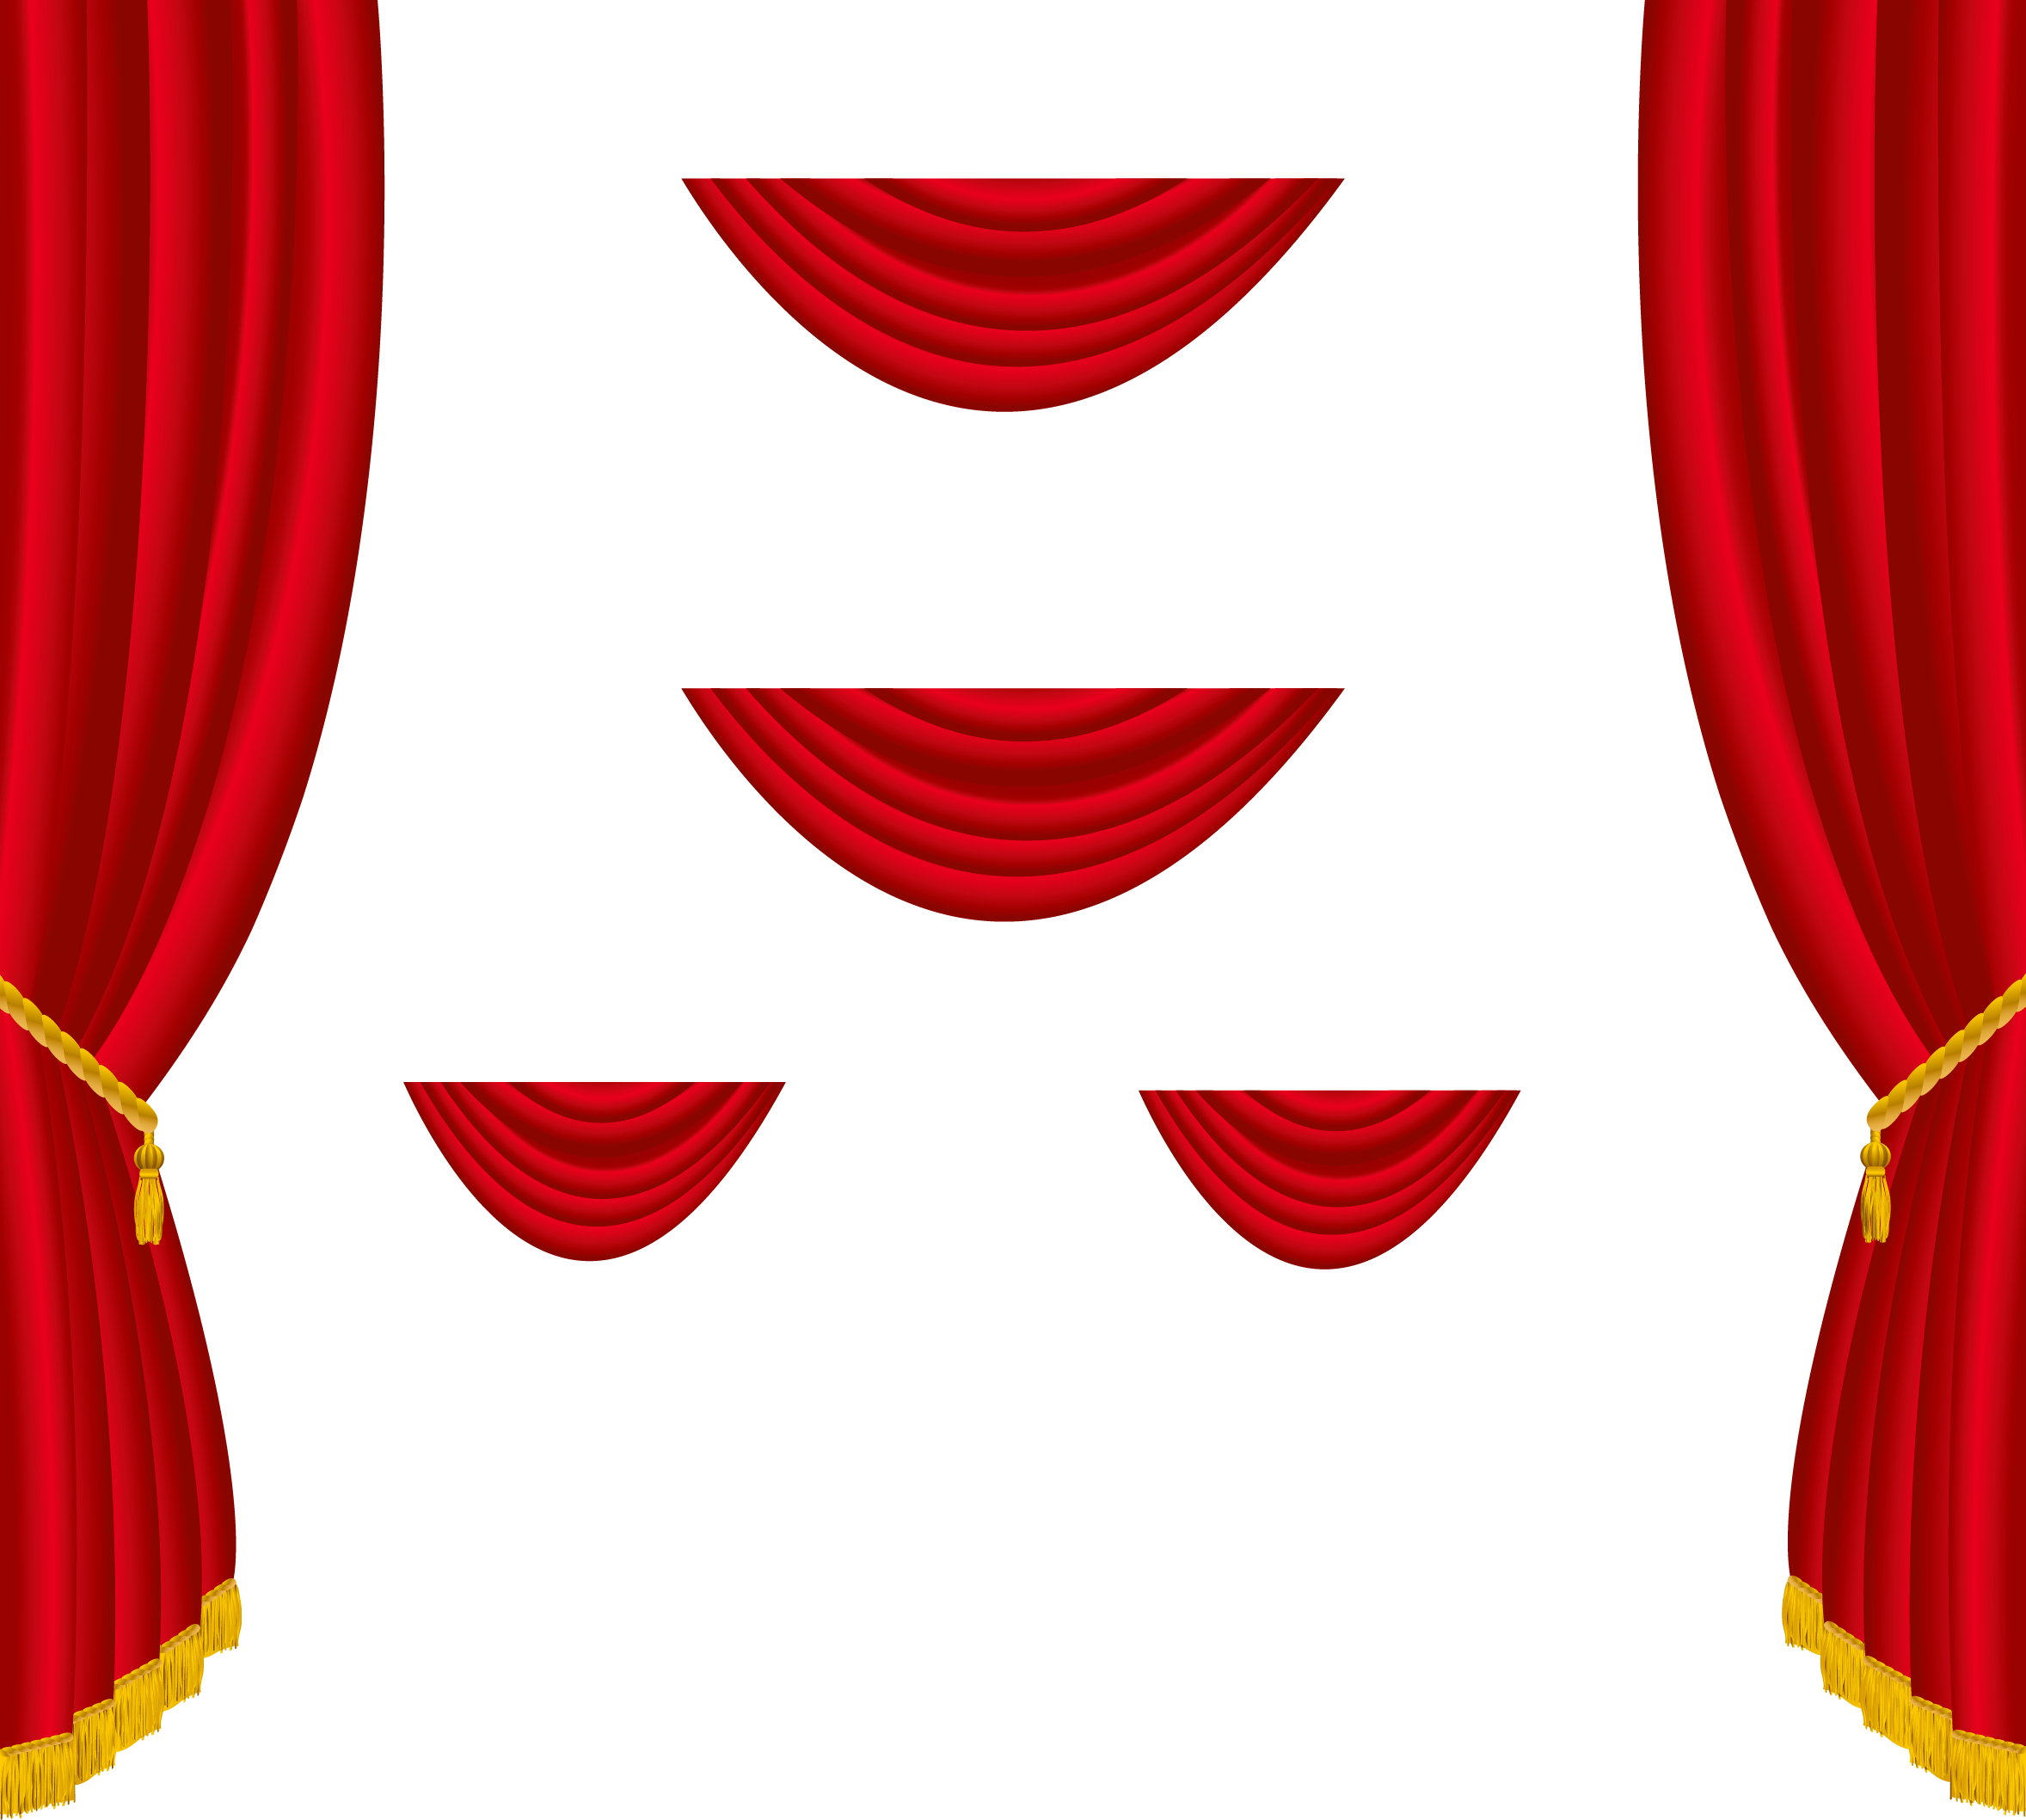 Curtains clipart side. Transparent red decoration png